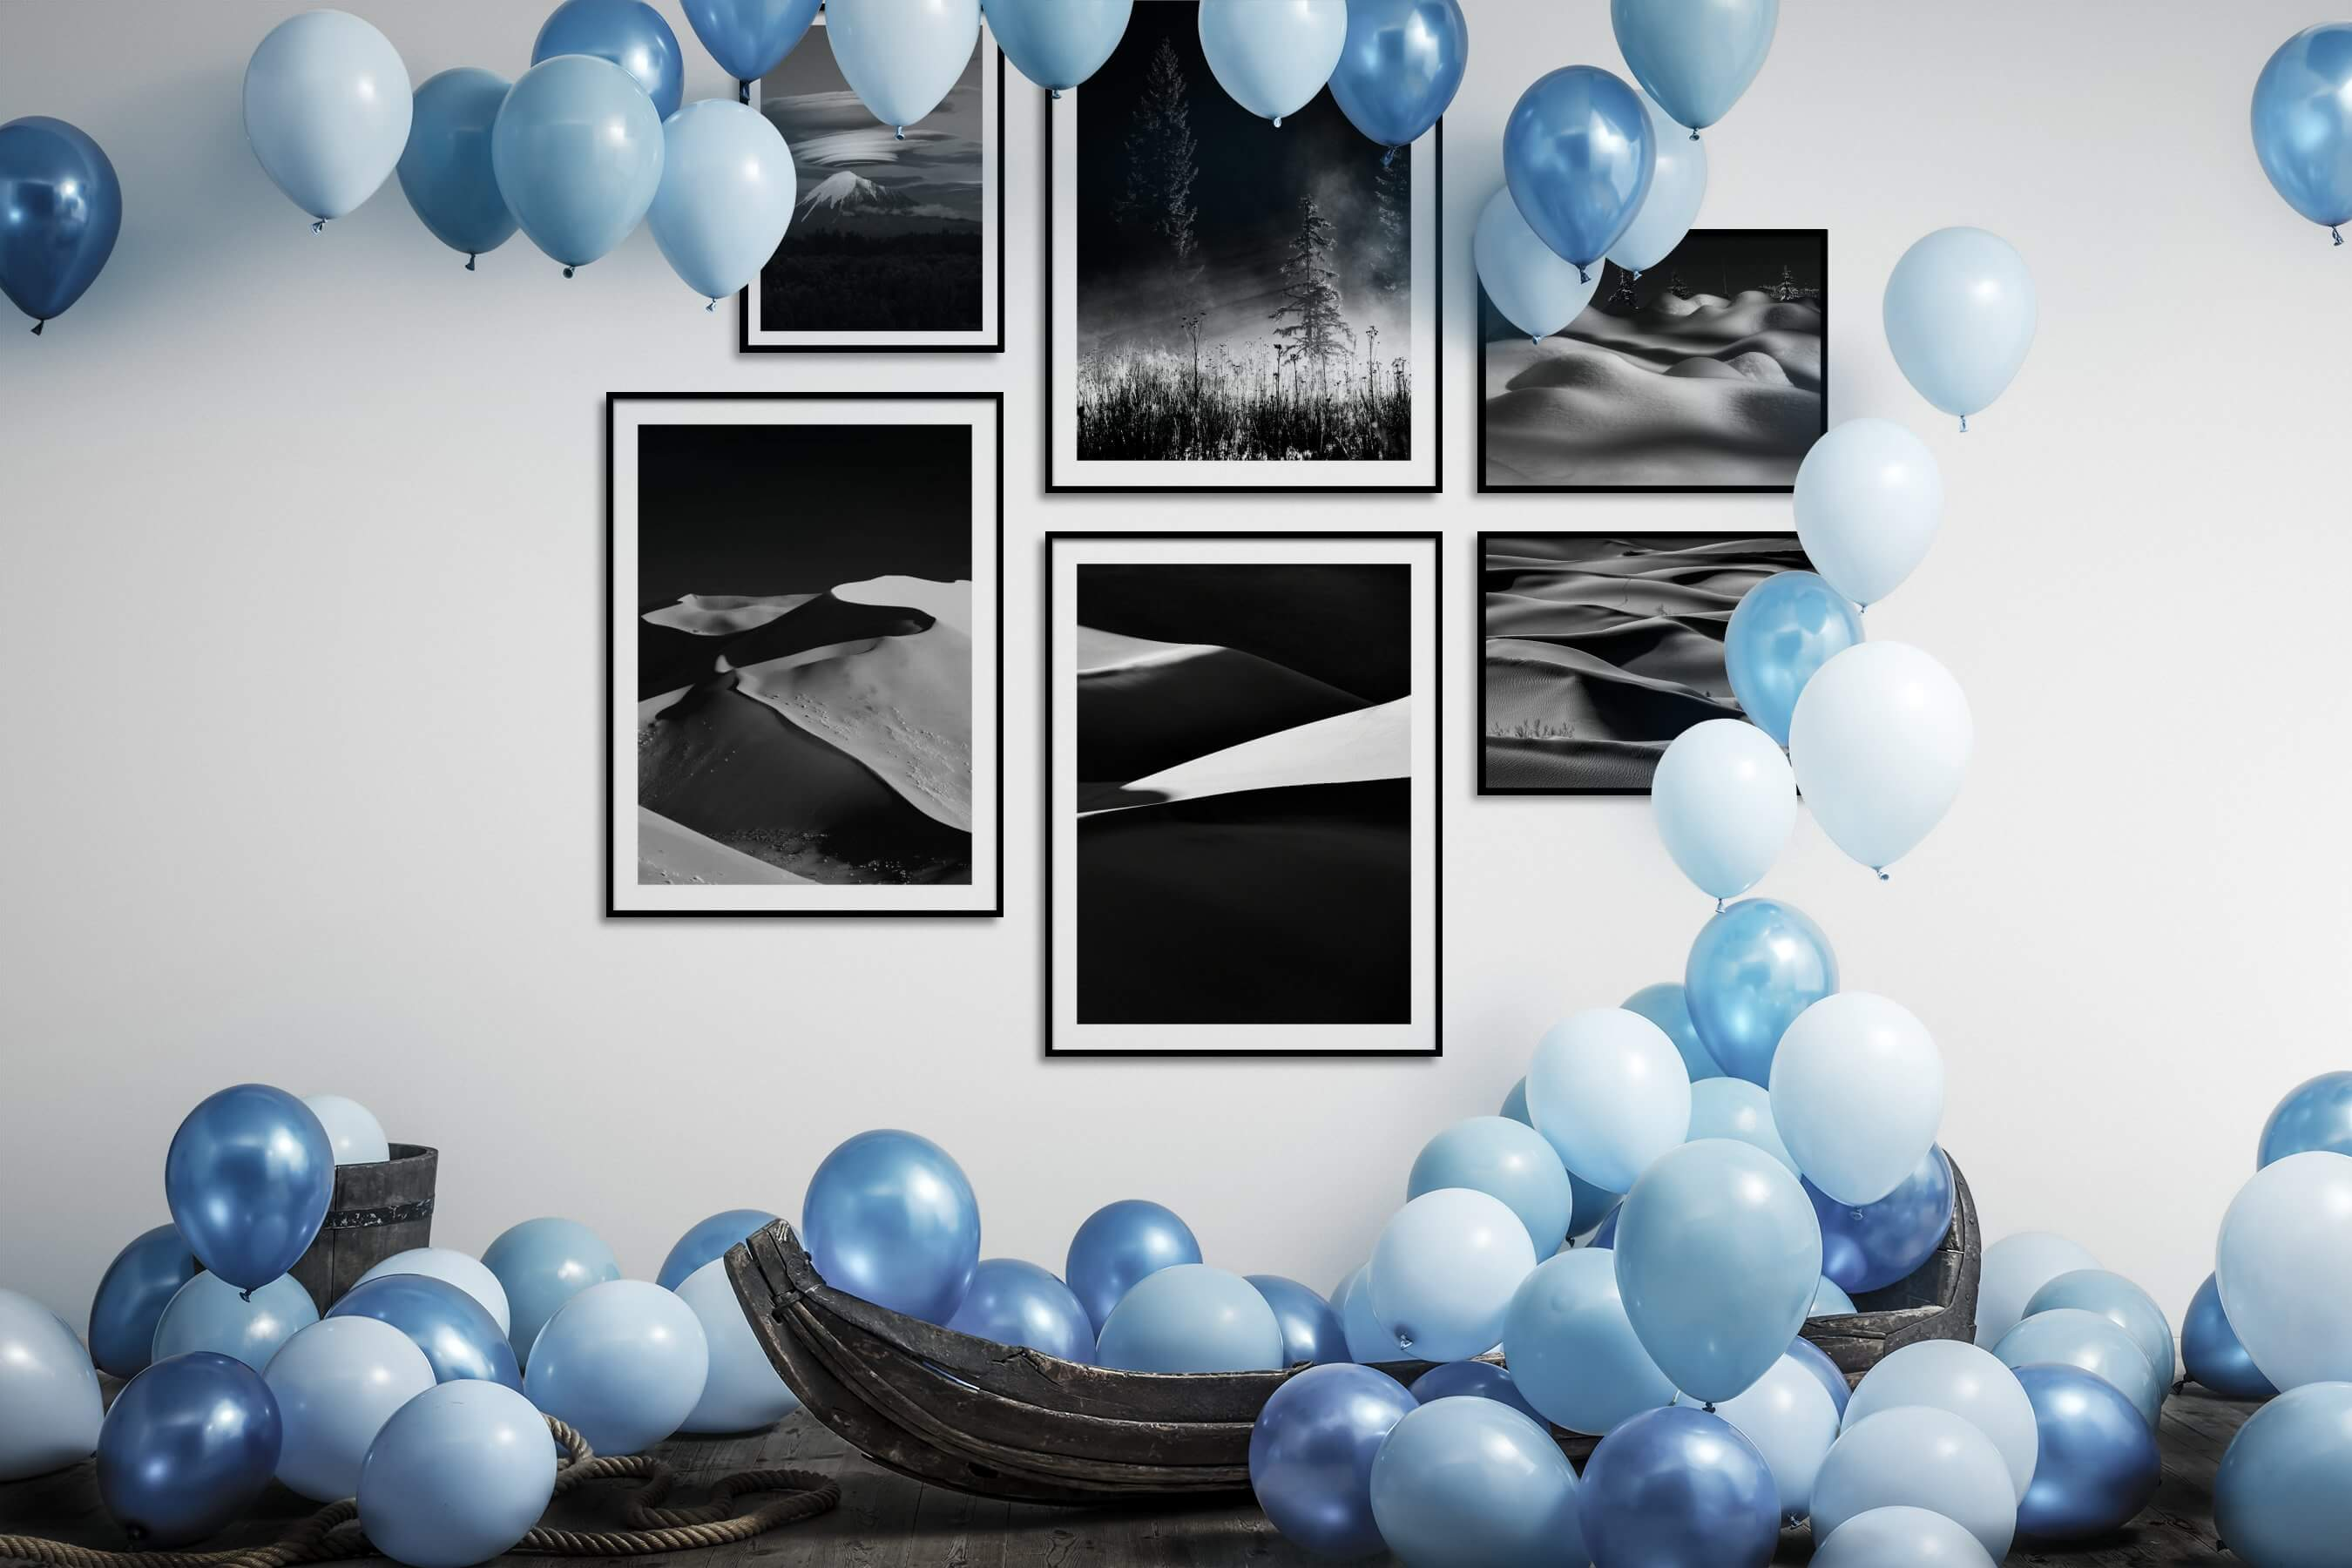 Gallery wall idea with six framed pictures arranged on a wall depicting Black & White, Nature, For the Minimalist, and For the Moderate